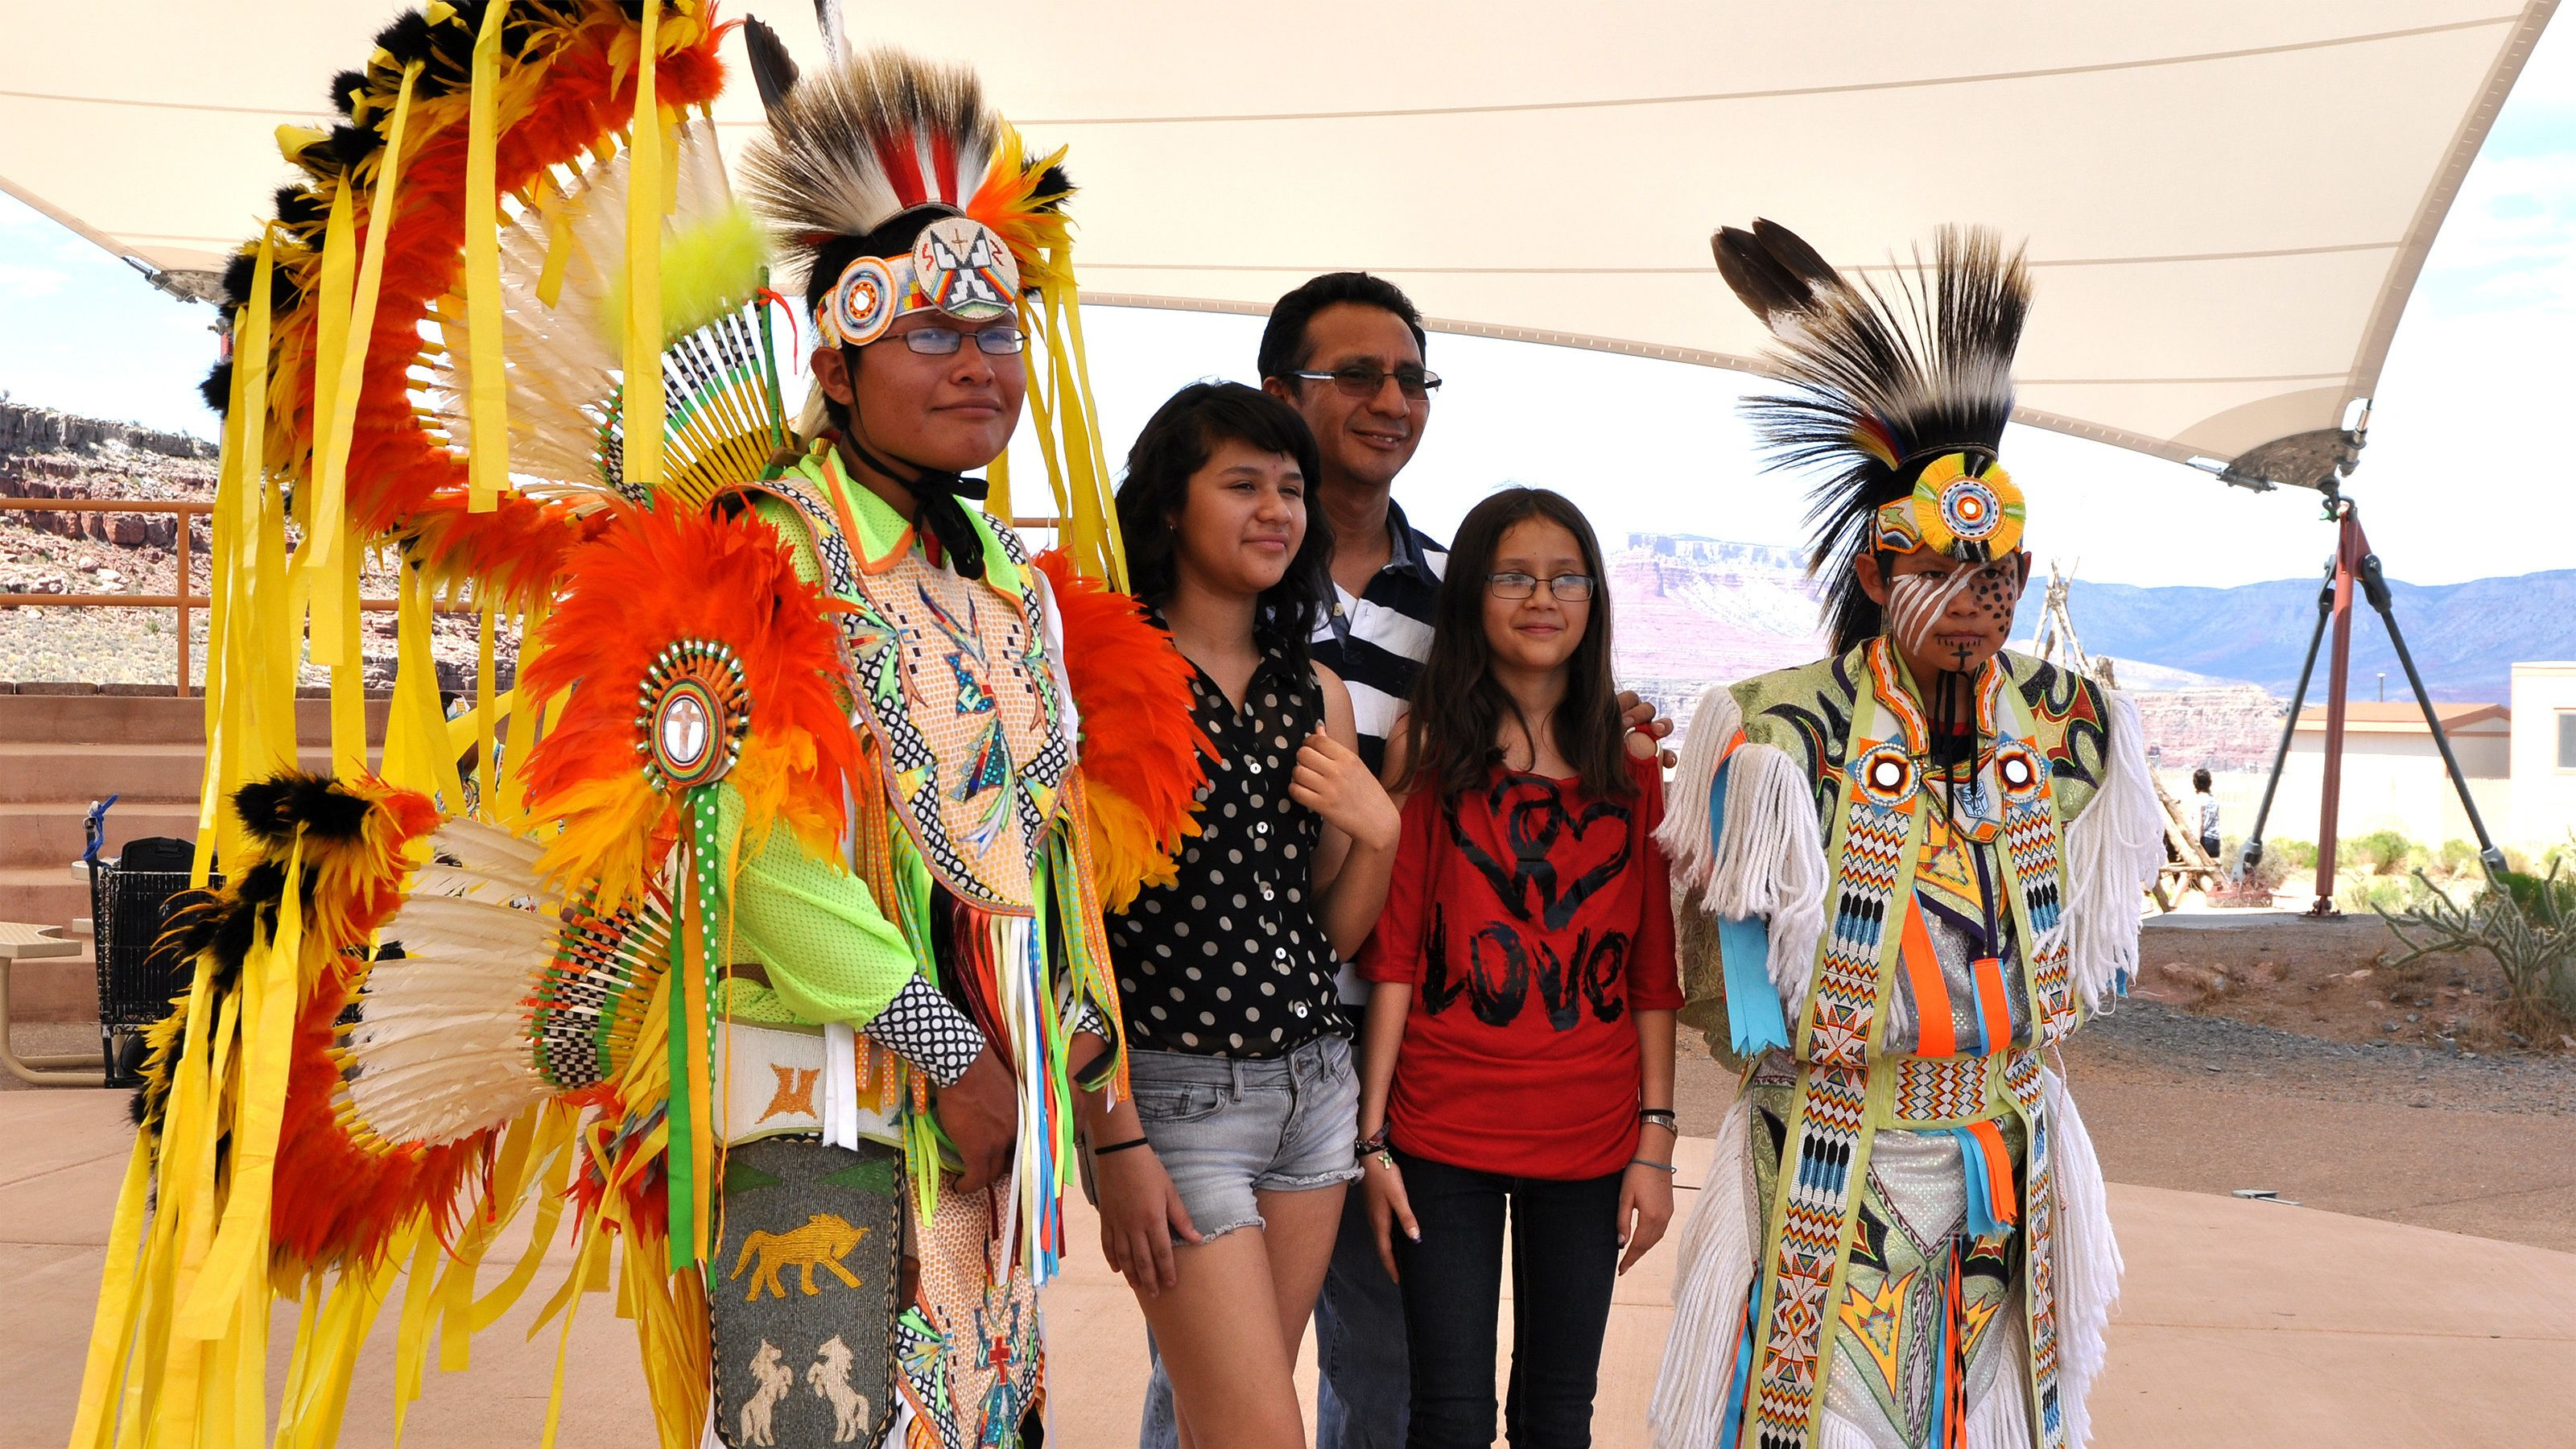 Tourists have a chance to take a photo op with Native Americans at Hualapai Ranch